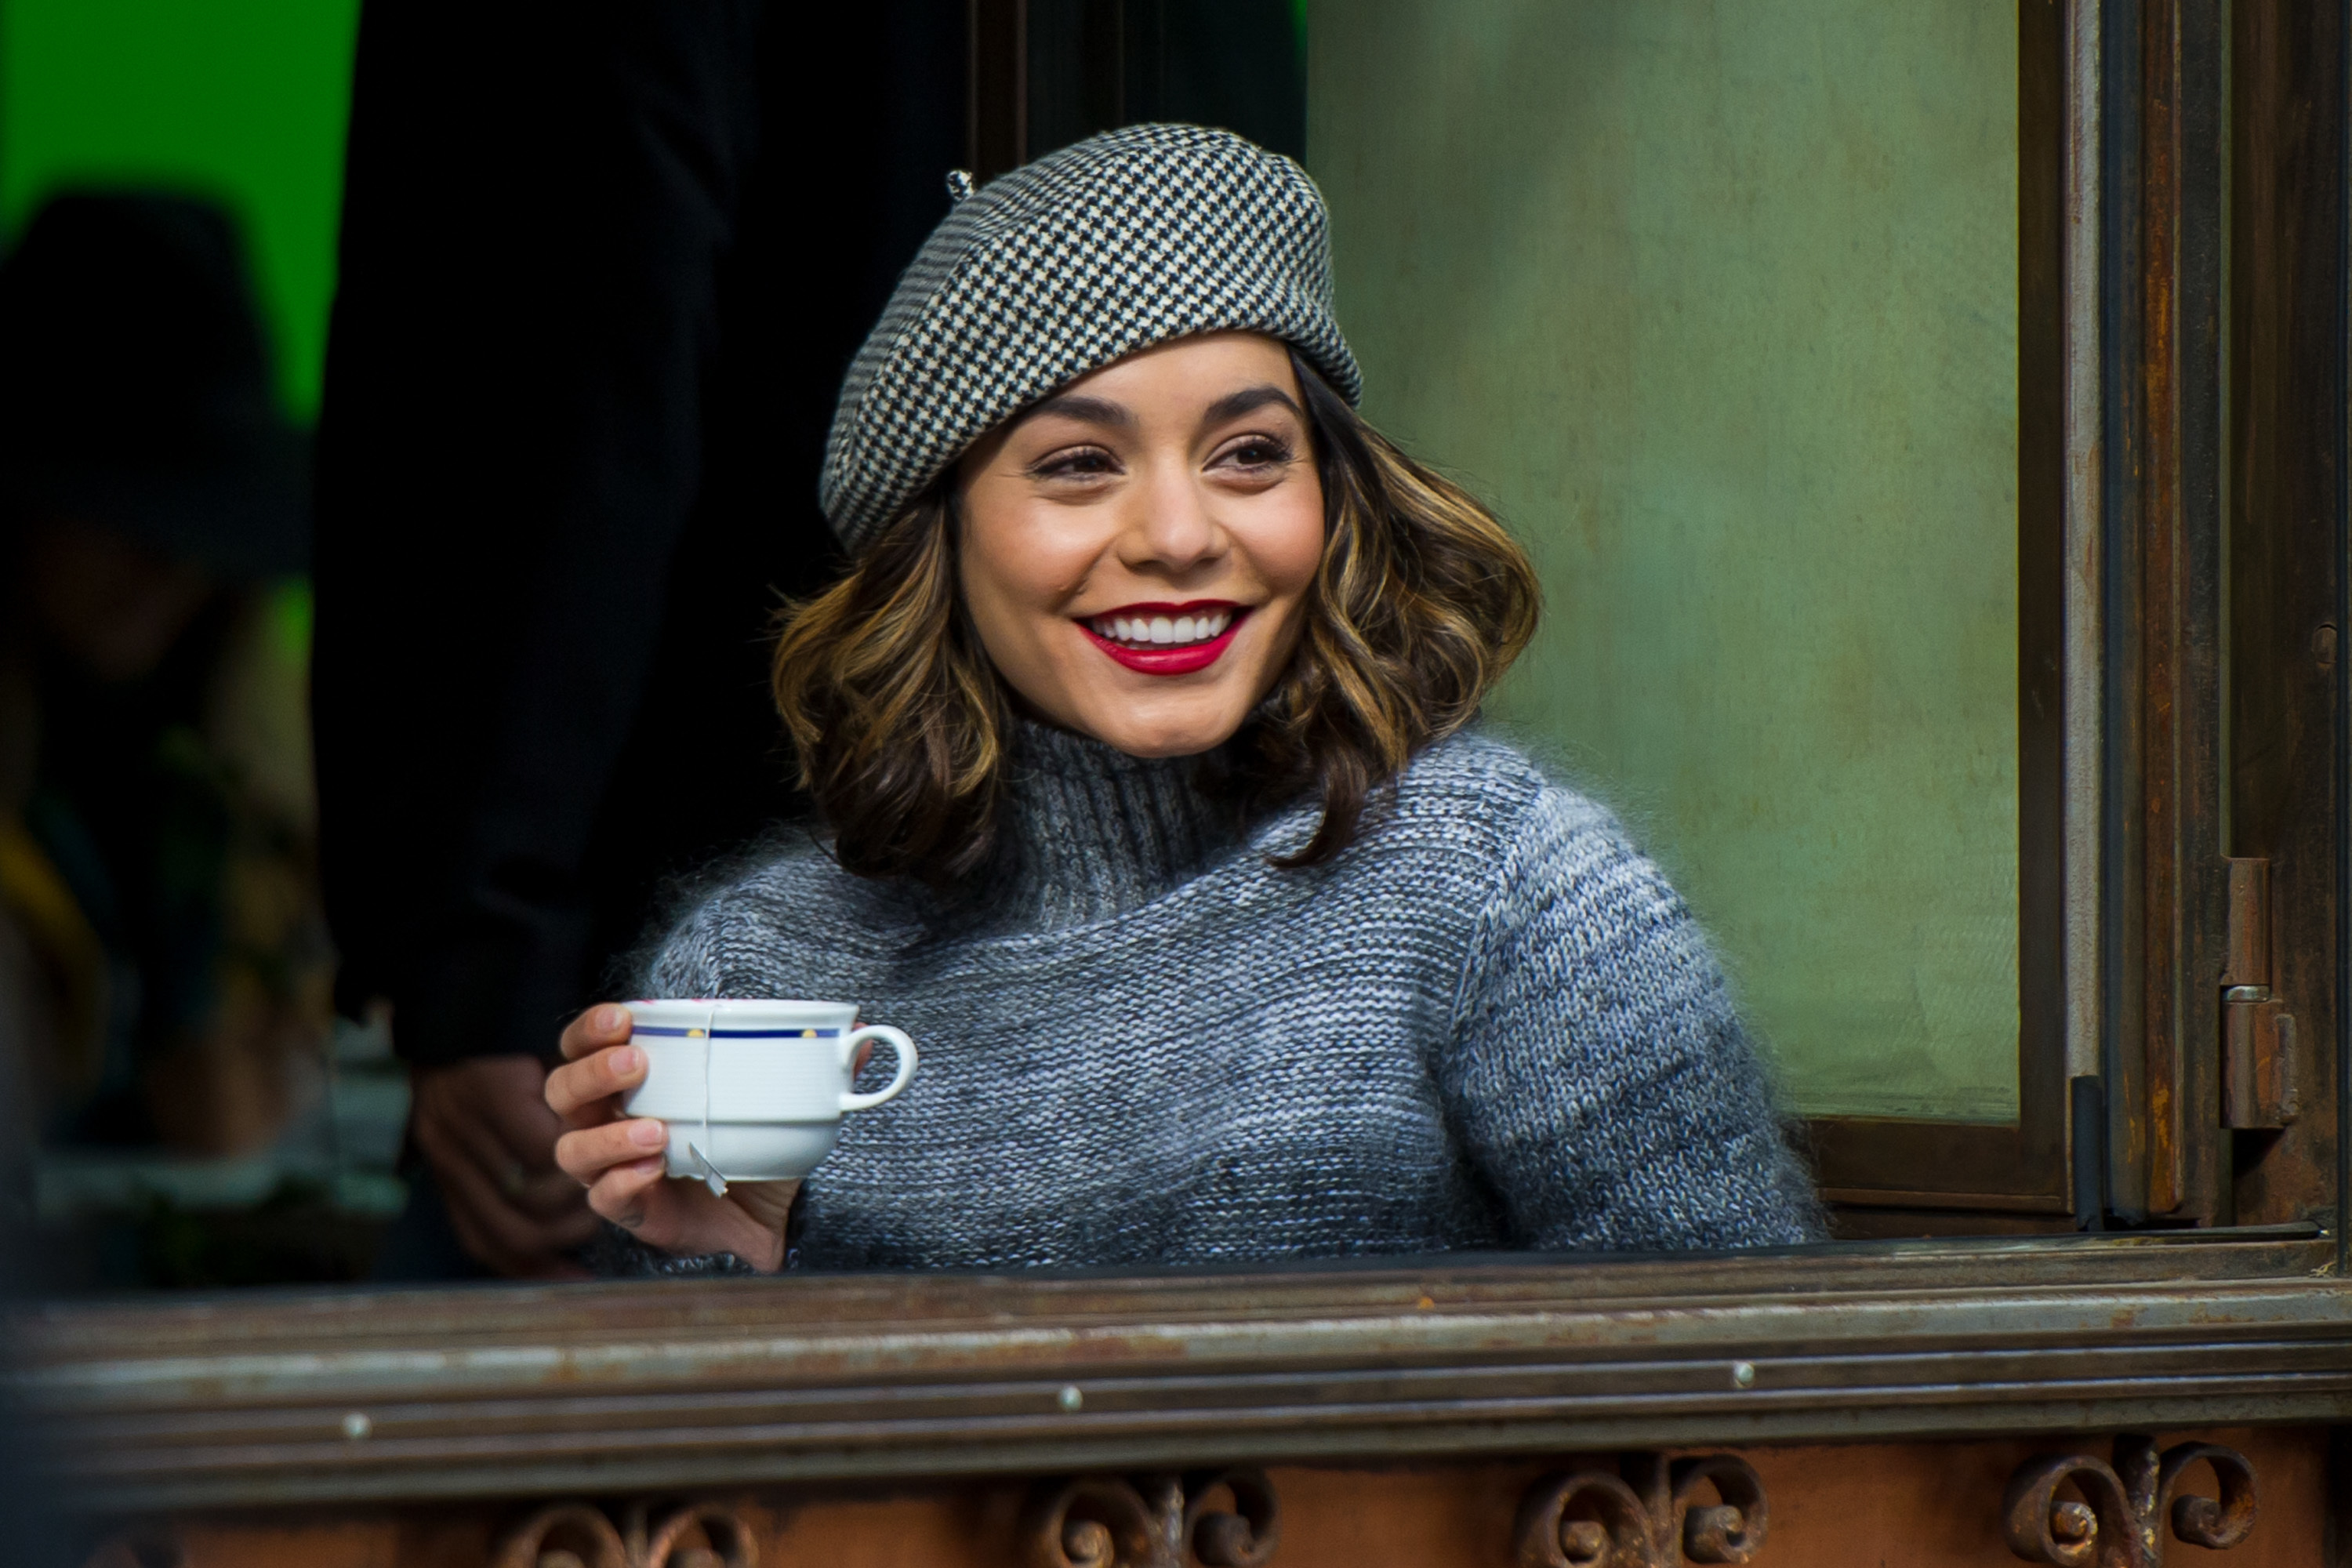 Vanessa Hudgens was spotted out for a cup of coffee in an adorable beret in Brooklyn, New York on Oct. 25, 2017.